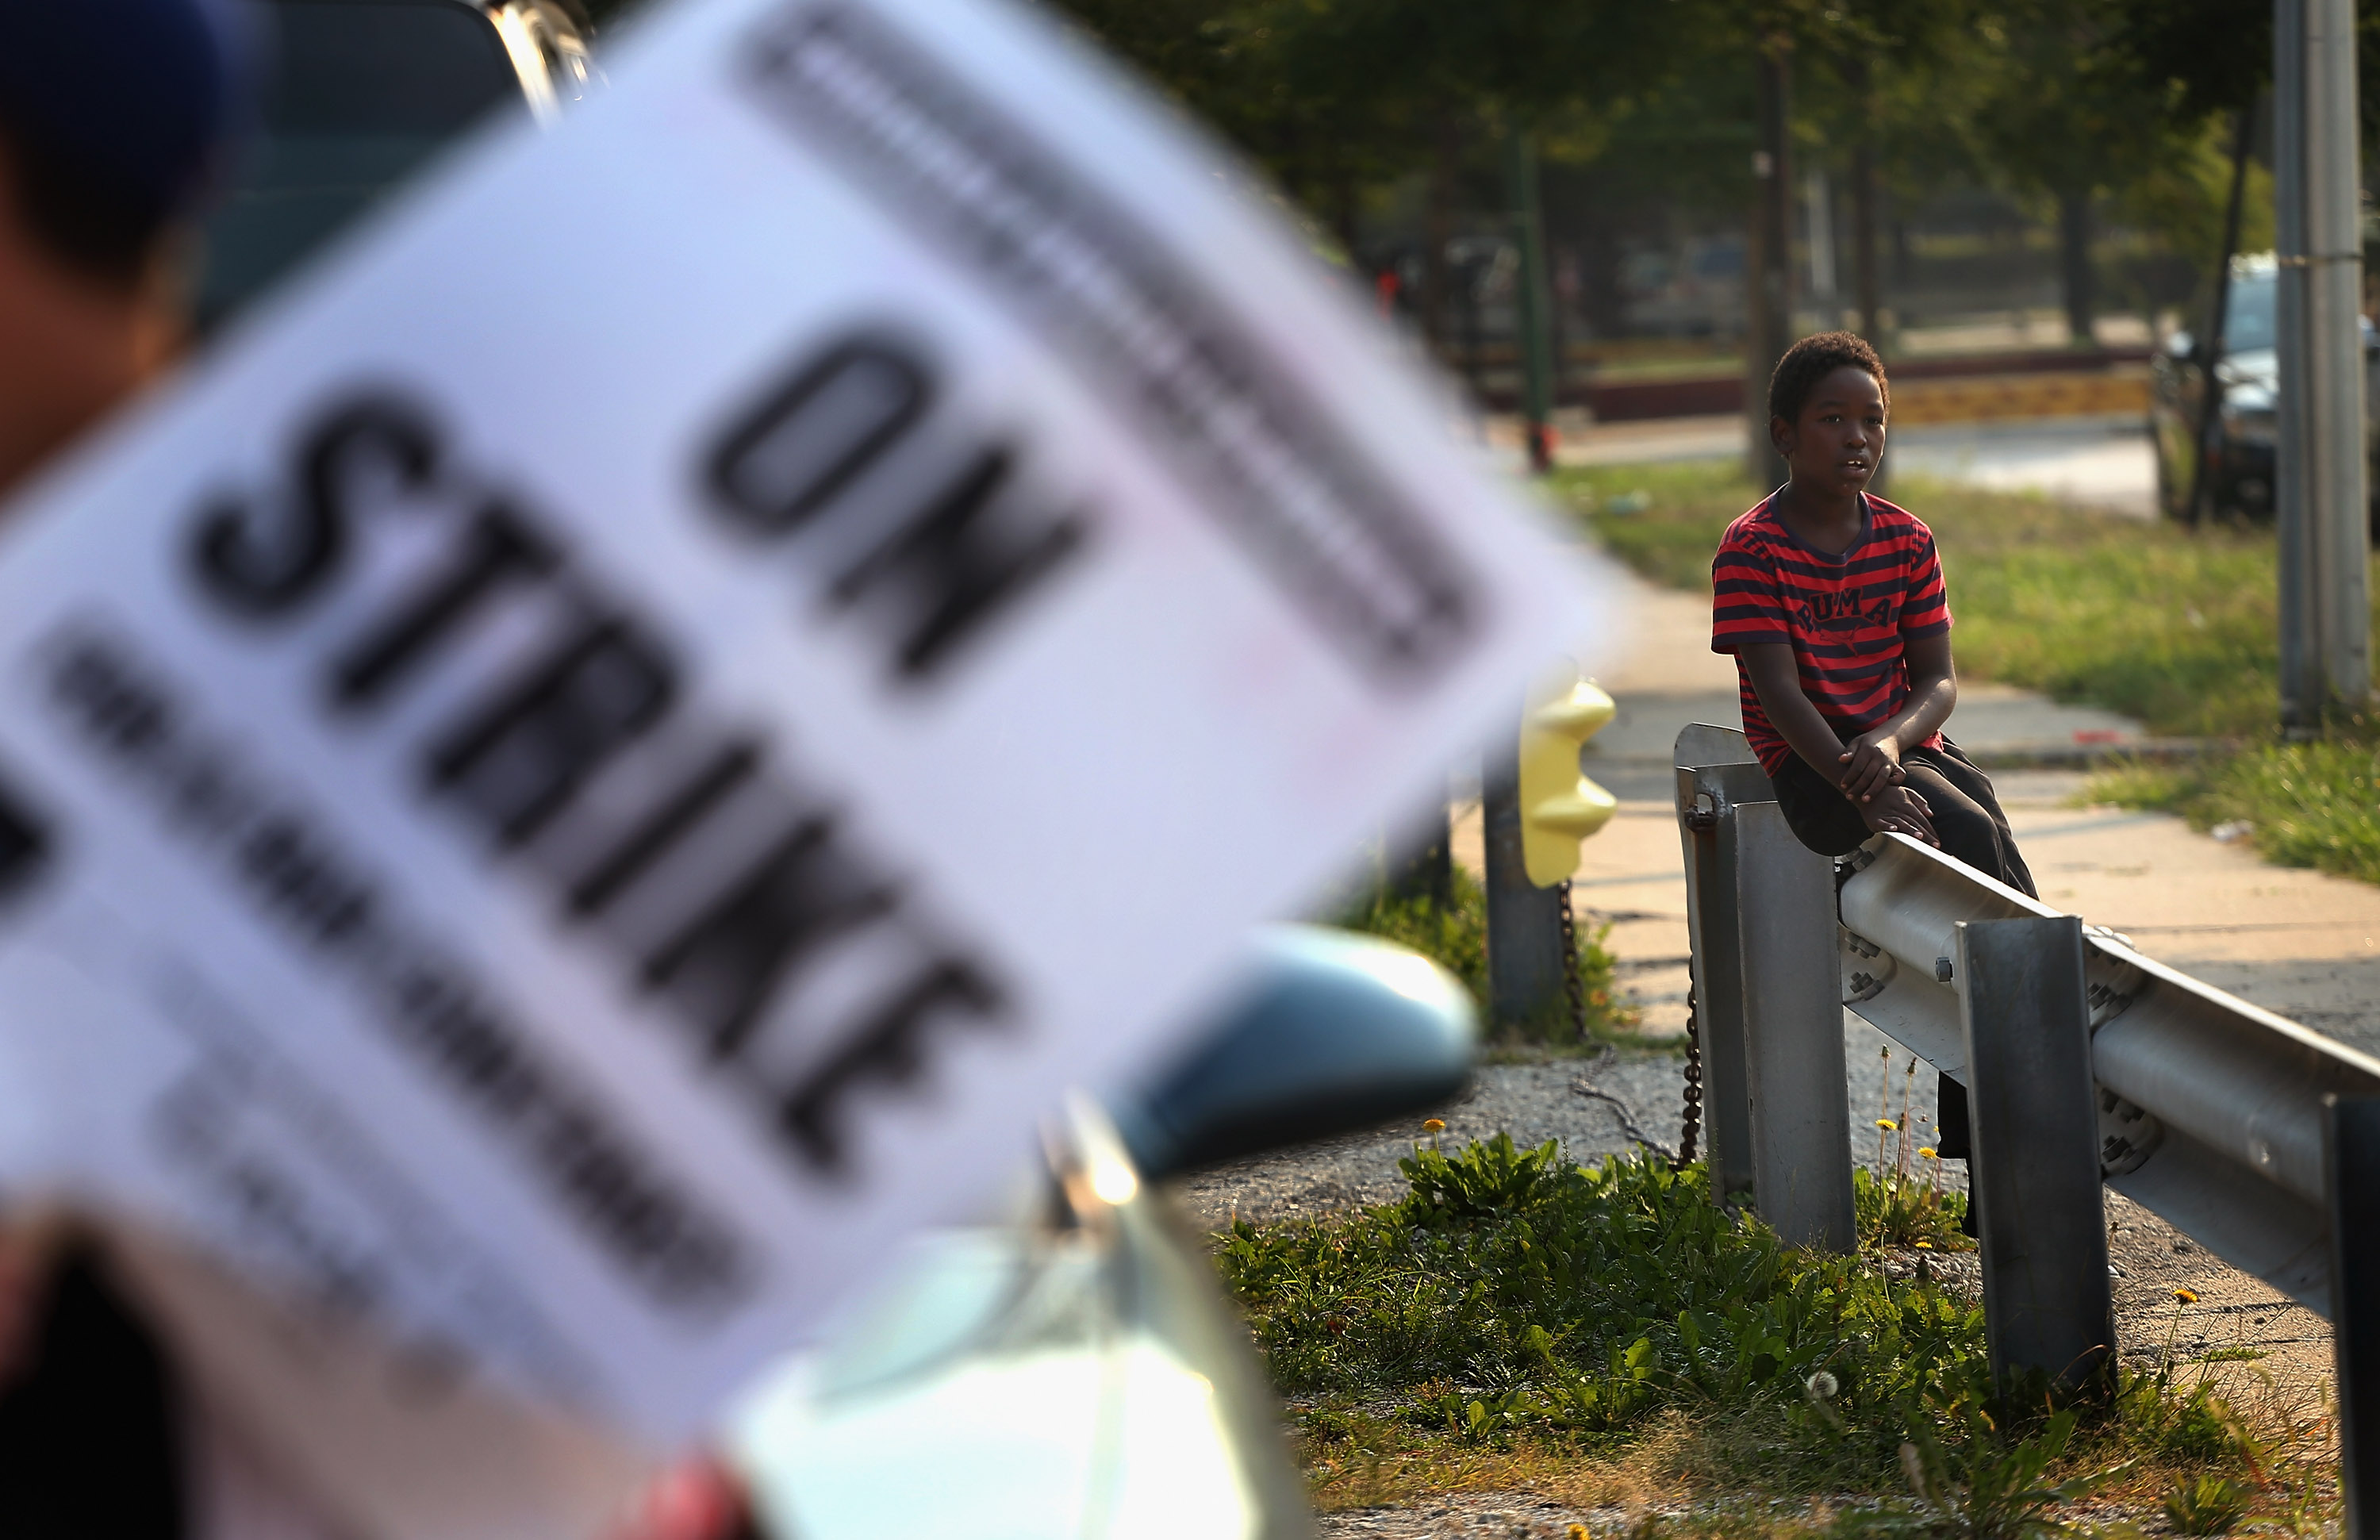 A third grader watches Chicago teachers as they picket outside his school in the fall of 2012.